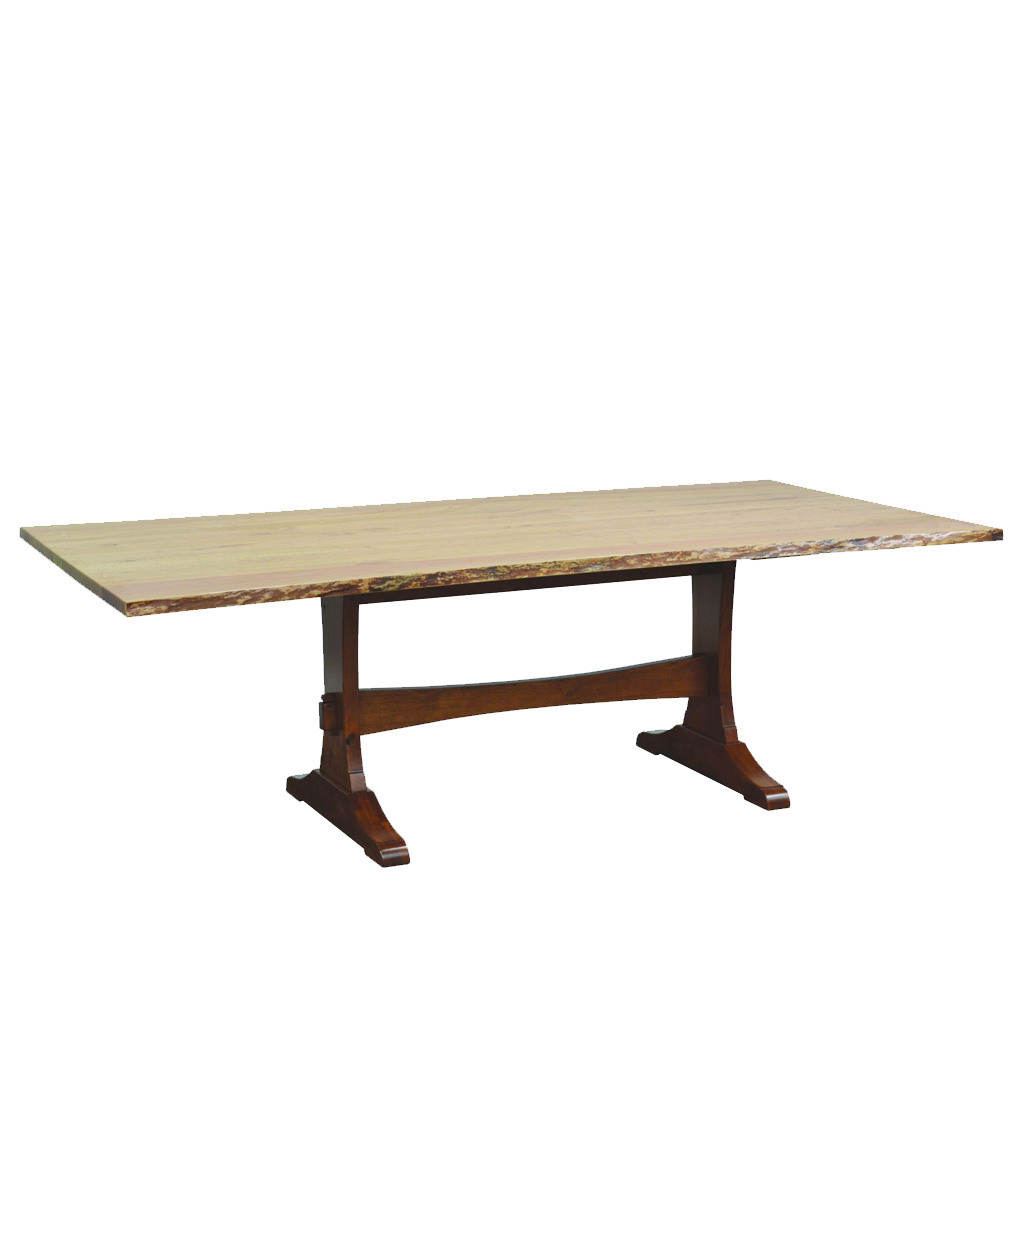 Wasilla Dining Table with Live Edge Amish Direct Furniture : WasillaDiningTablewithLiveEdgethumb from amishdirectfurniture.com size 1020 x 1240 jpeg 66kB